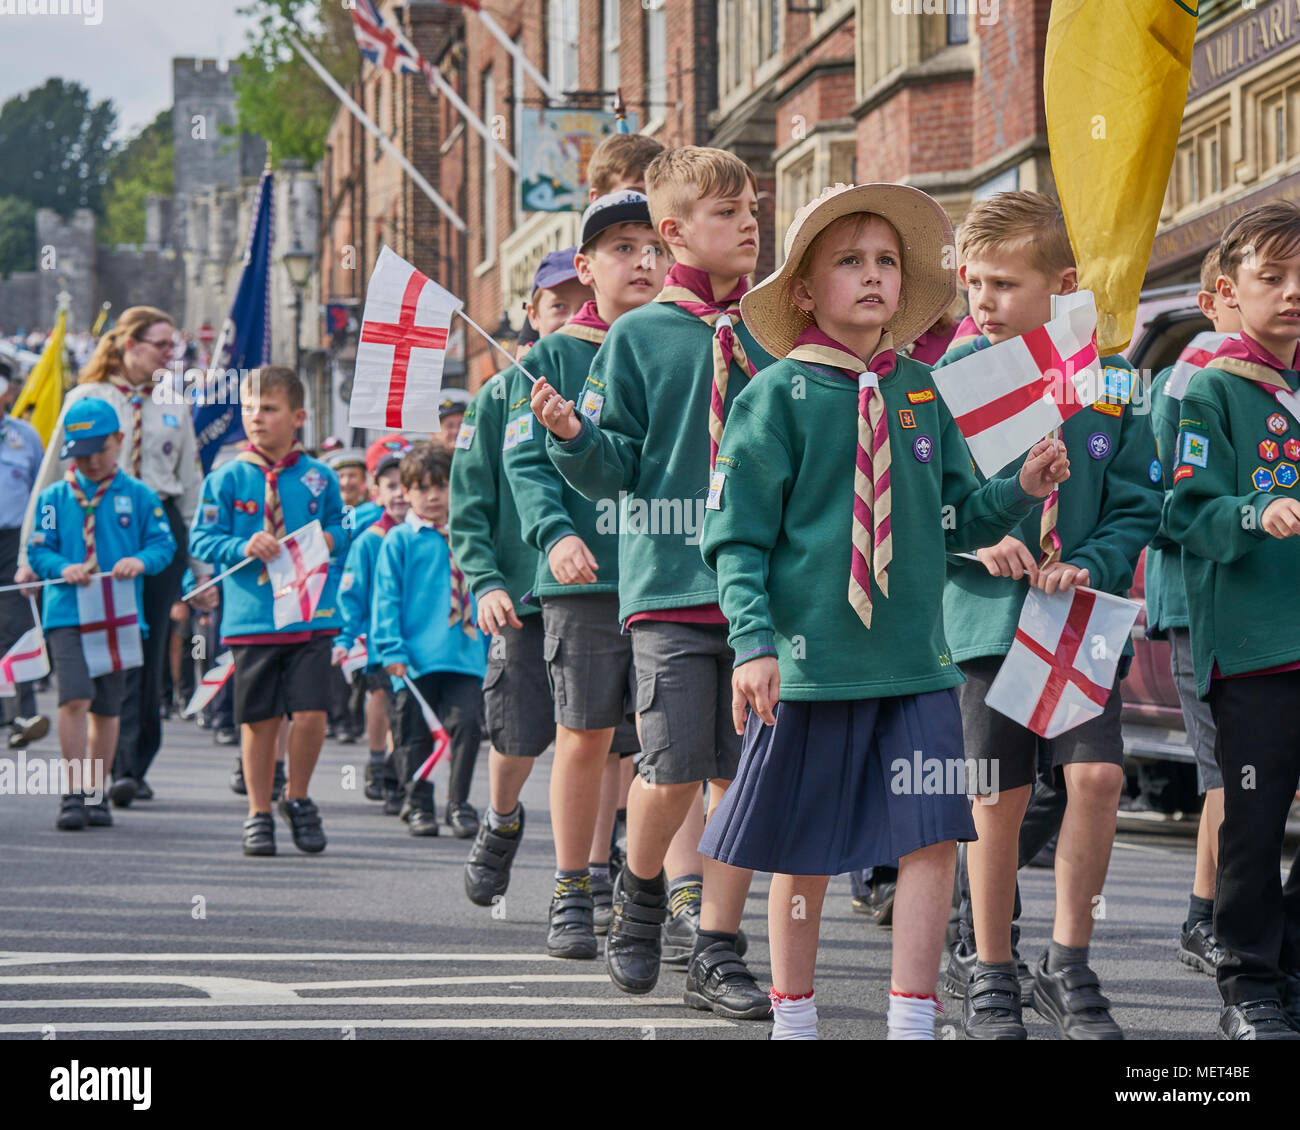 Scouts Stock Photos & Scouts Stock Images - Alamy